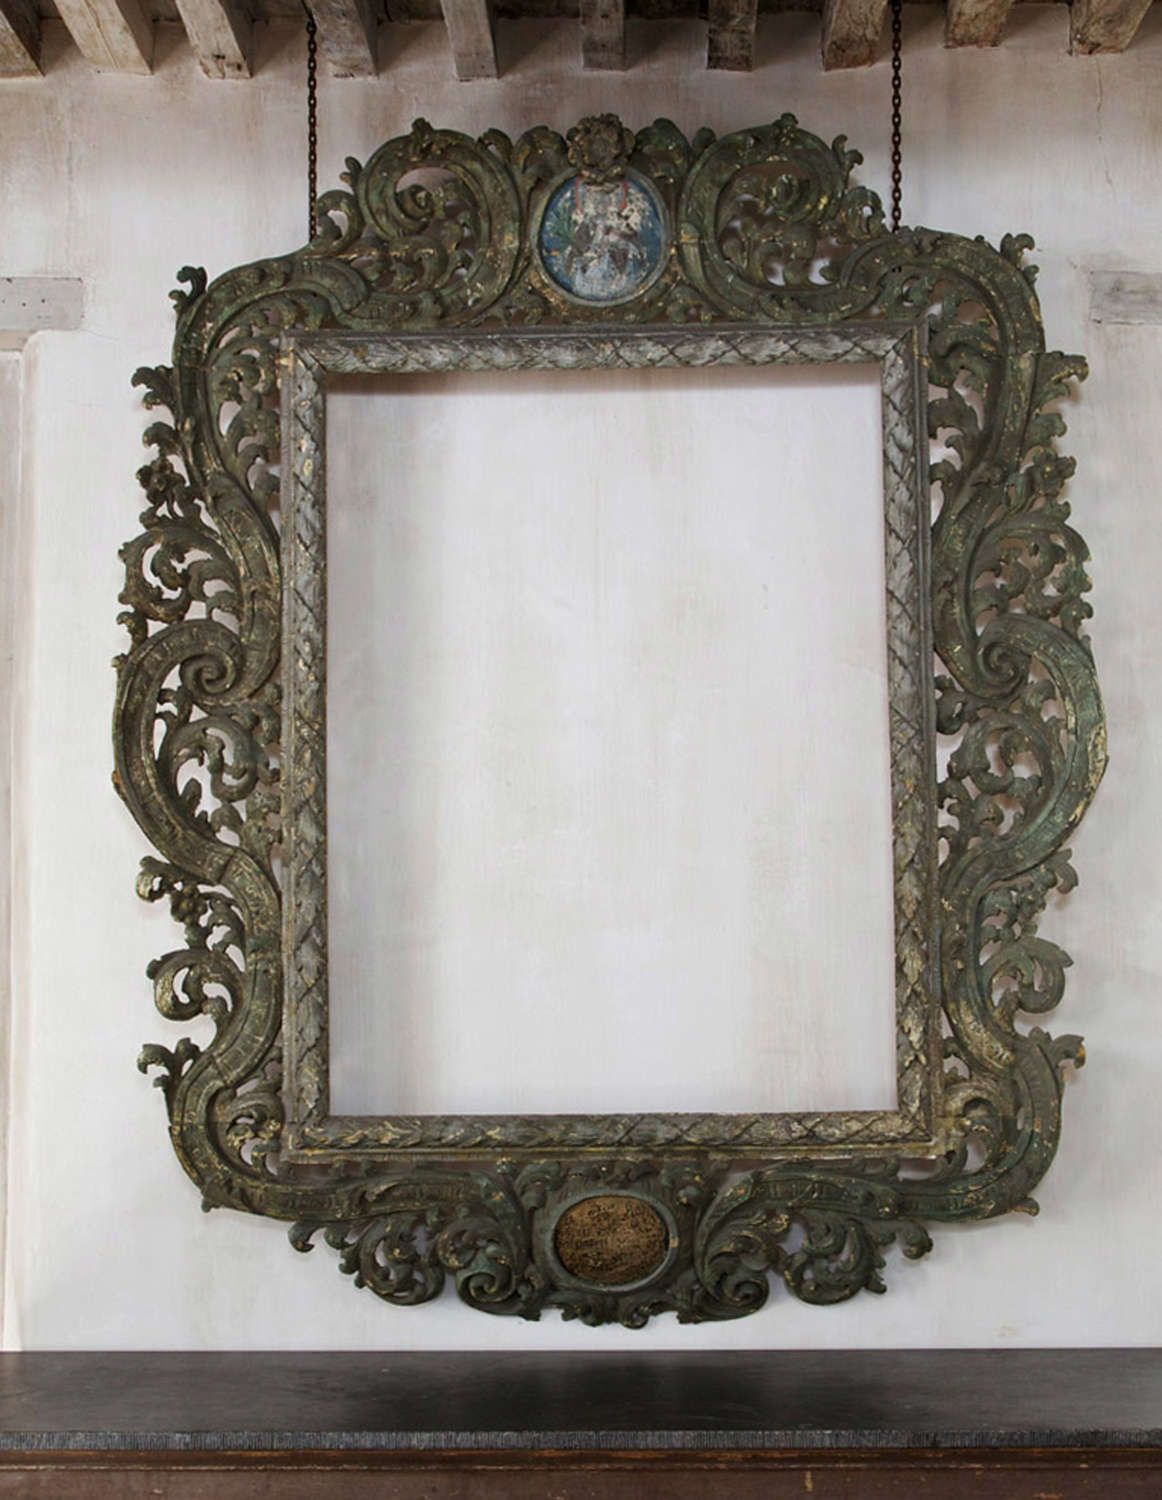 18th century large Austrian Baroque carved wooden frame